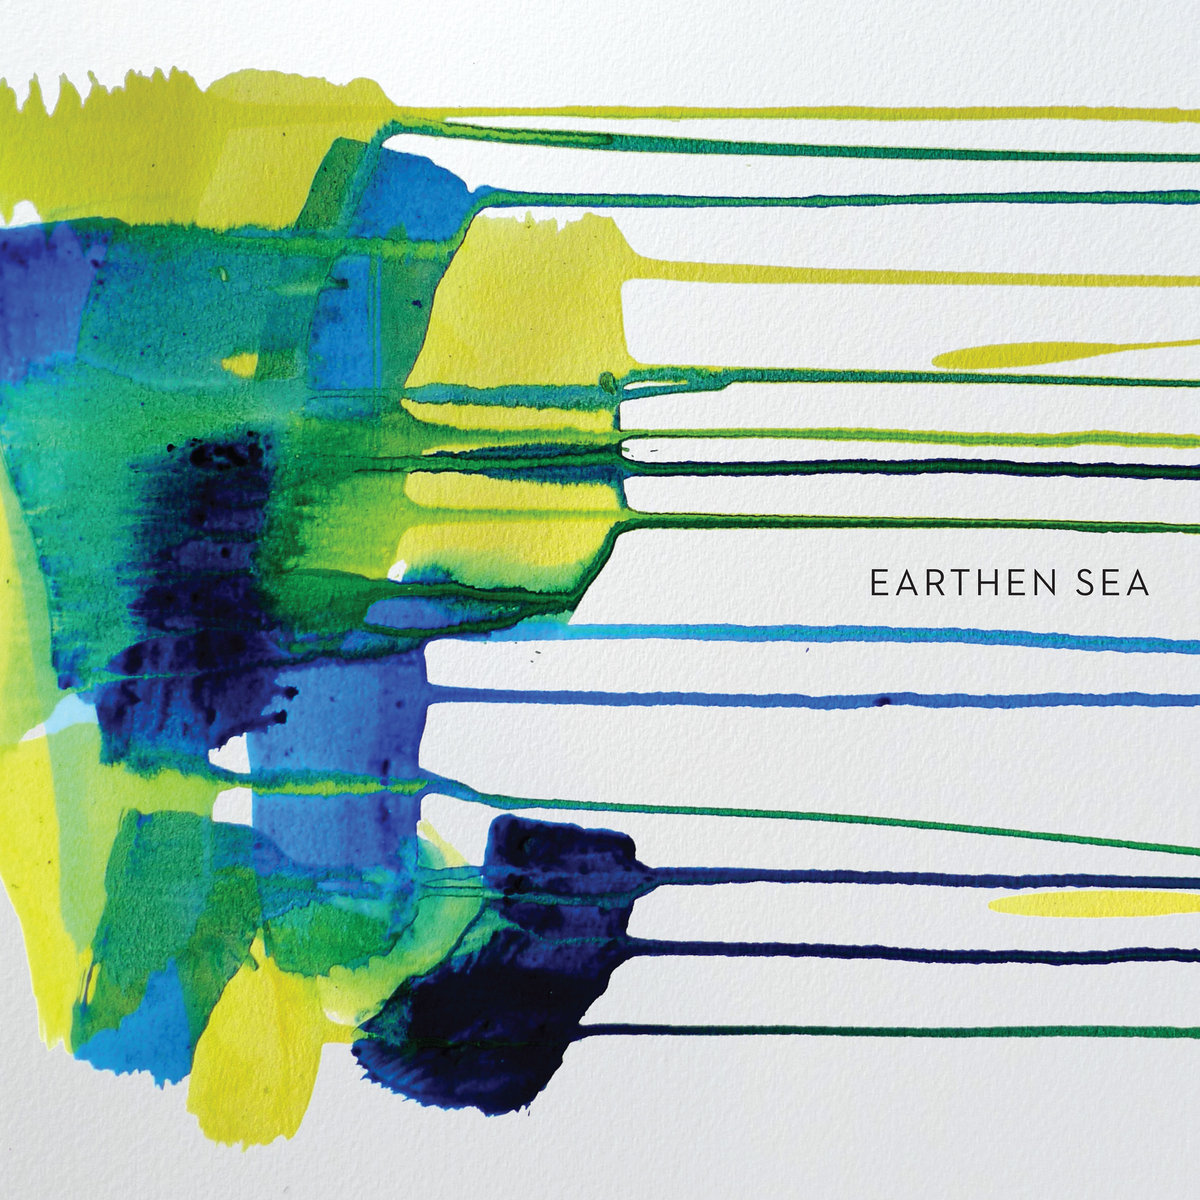 Earthern Sea